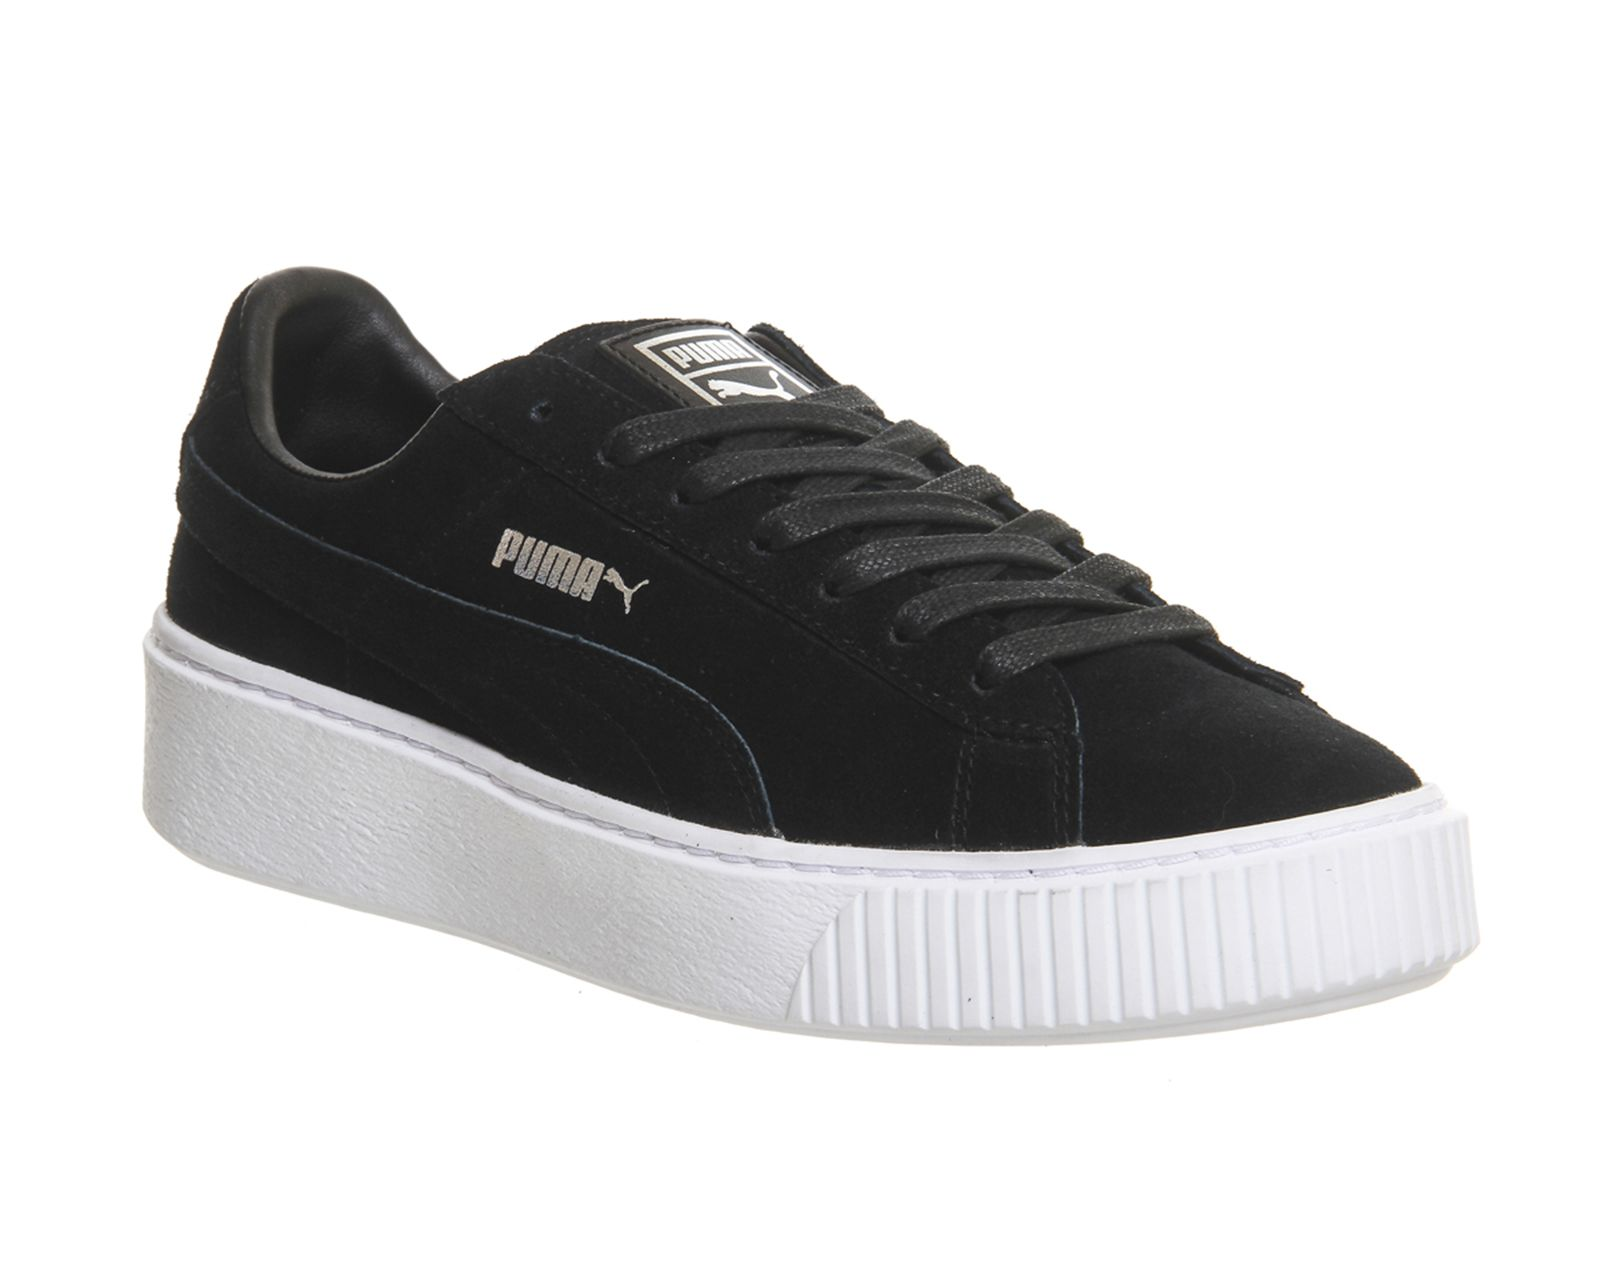 huge selection of a8c8e 90362 Buy Black White Puma Suede Platform from OFFICE.co.uk ...